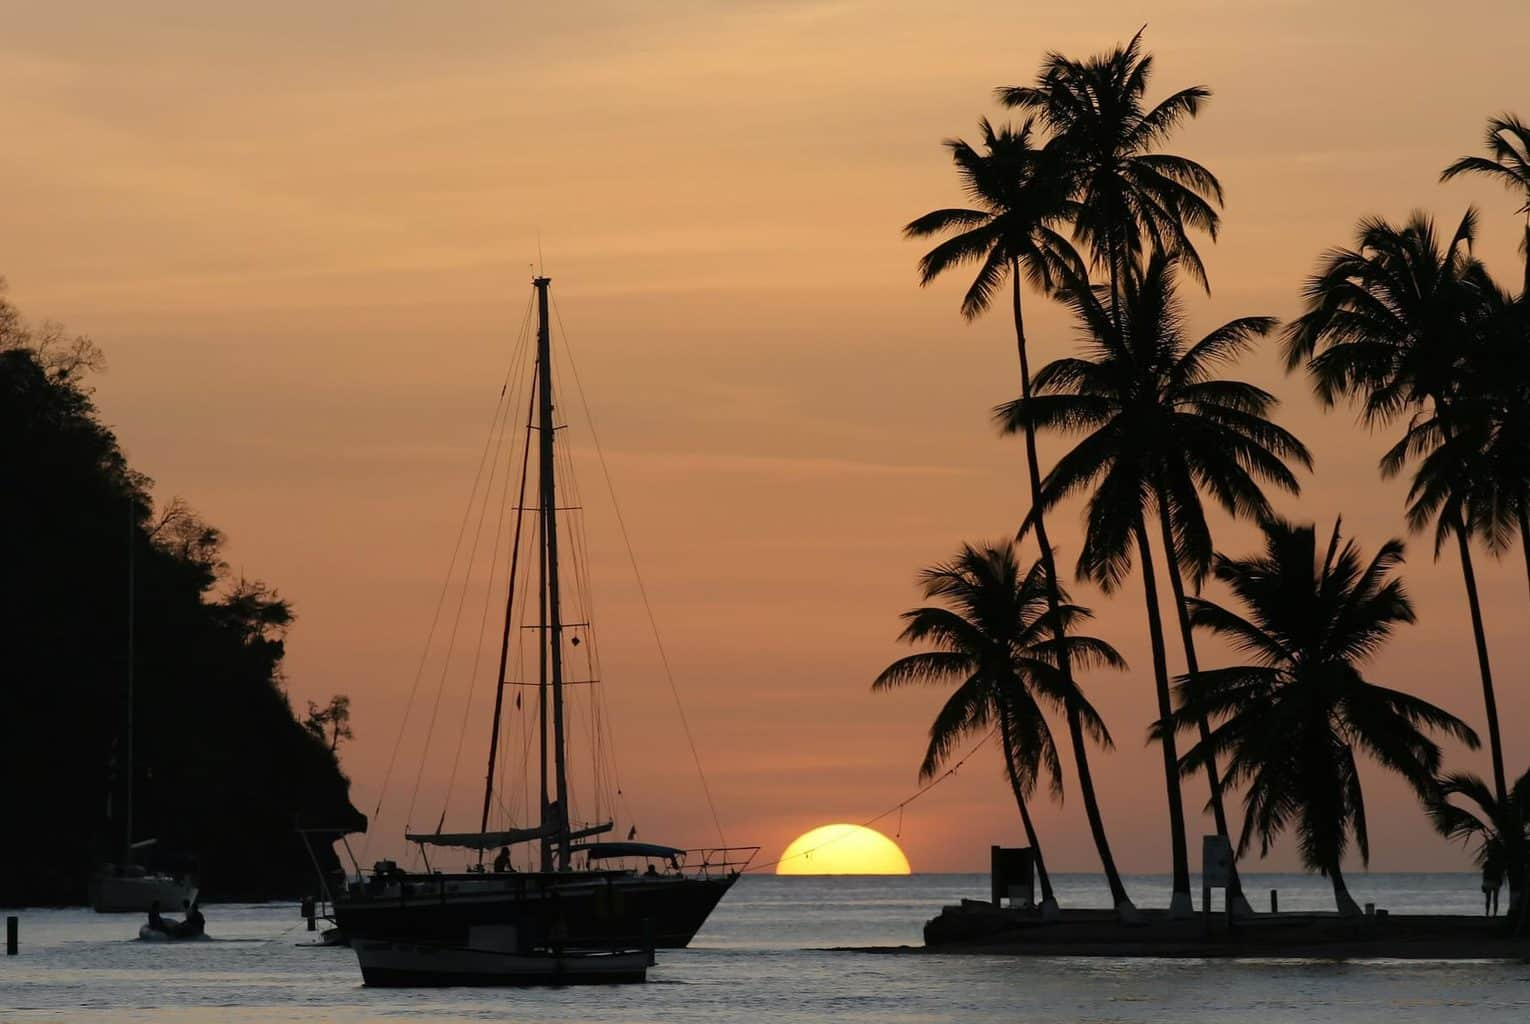 Luxury Holiday to St Lucia - Boat, palm tree on ocean at sunset